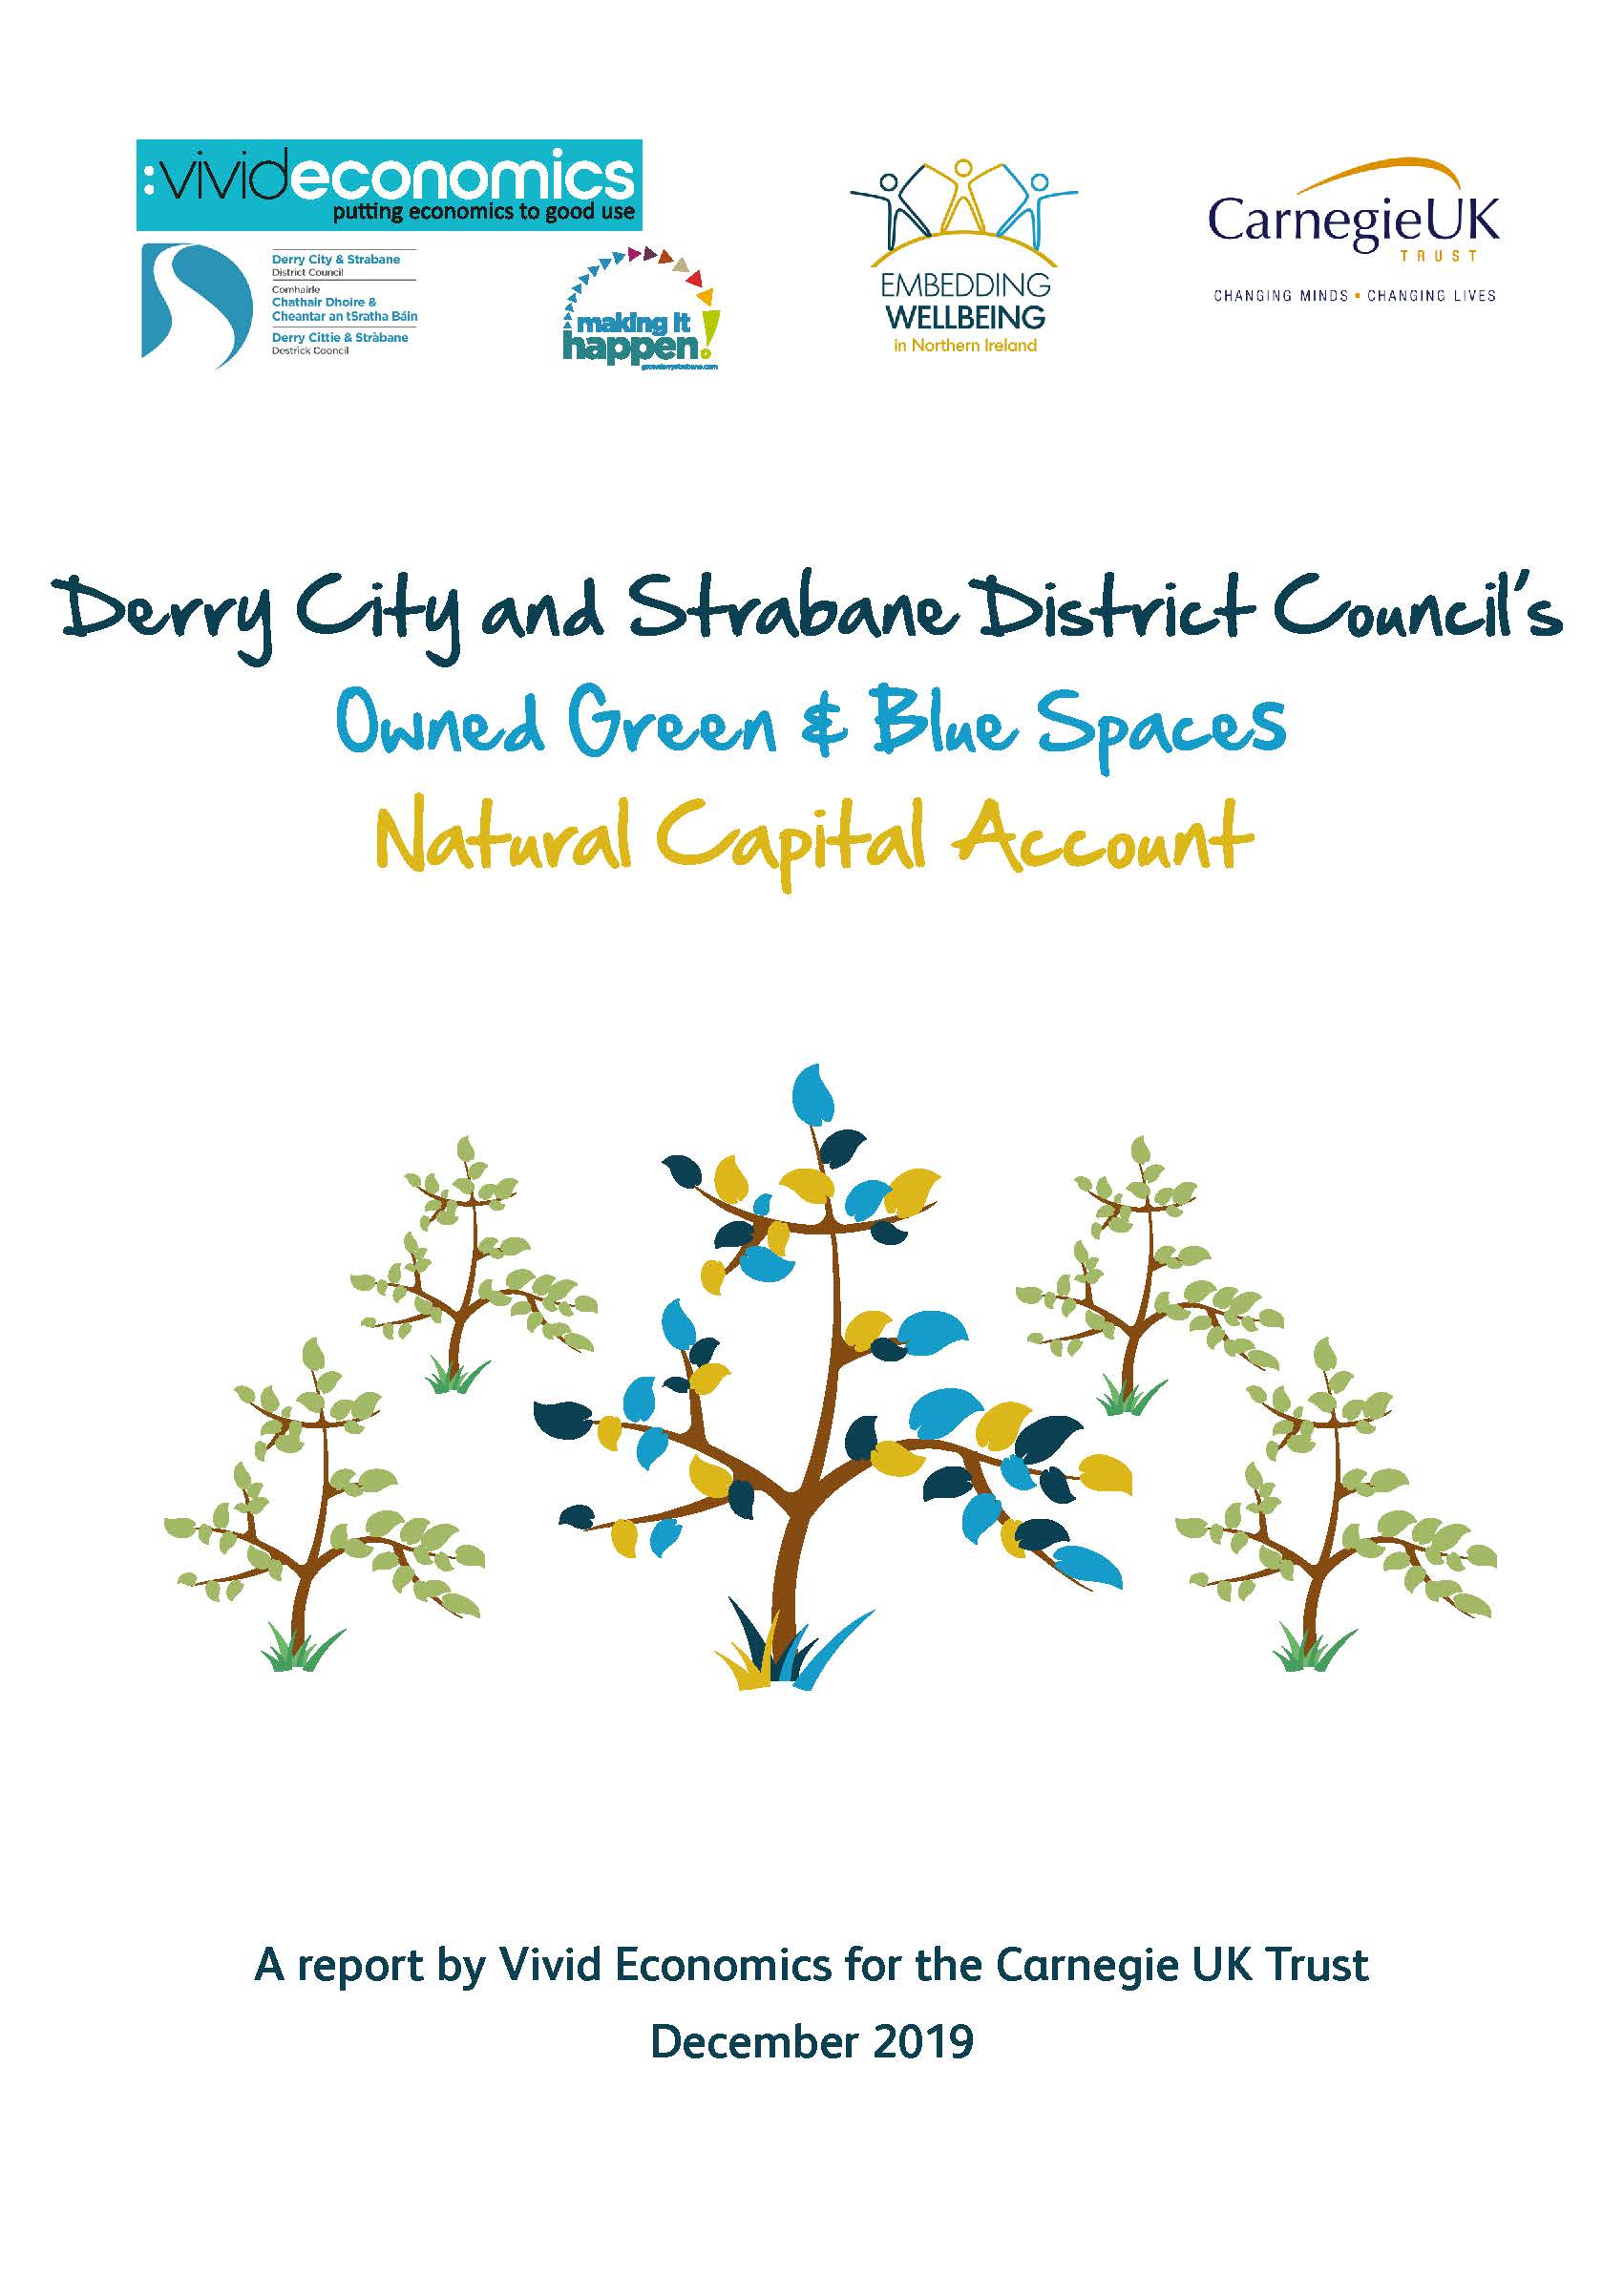 Natural Capital Account for Derry City and Strabane District